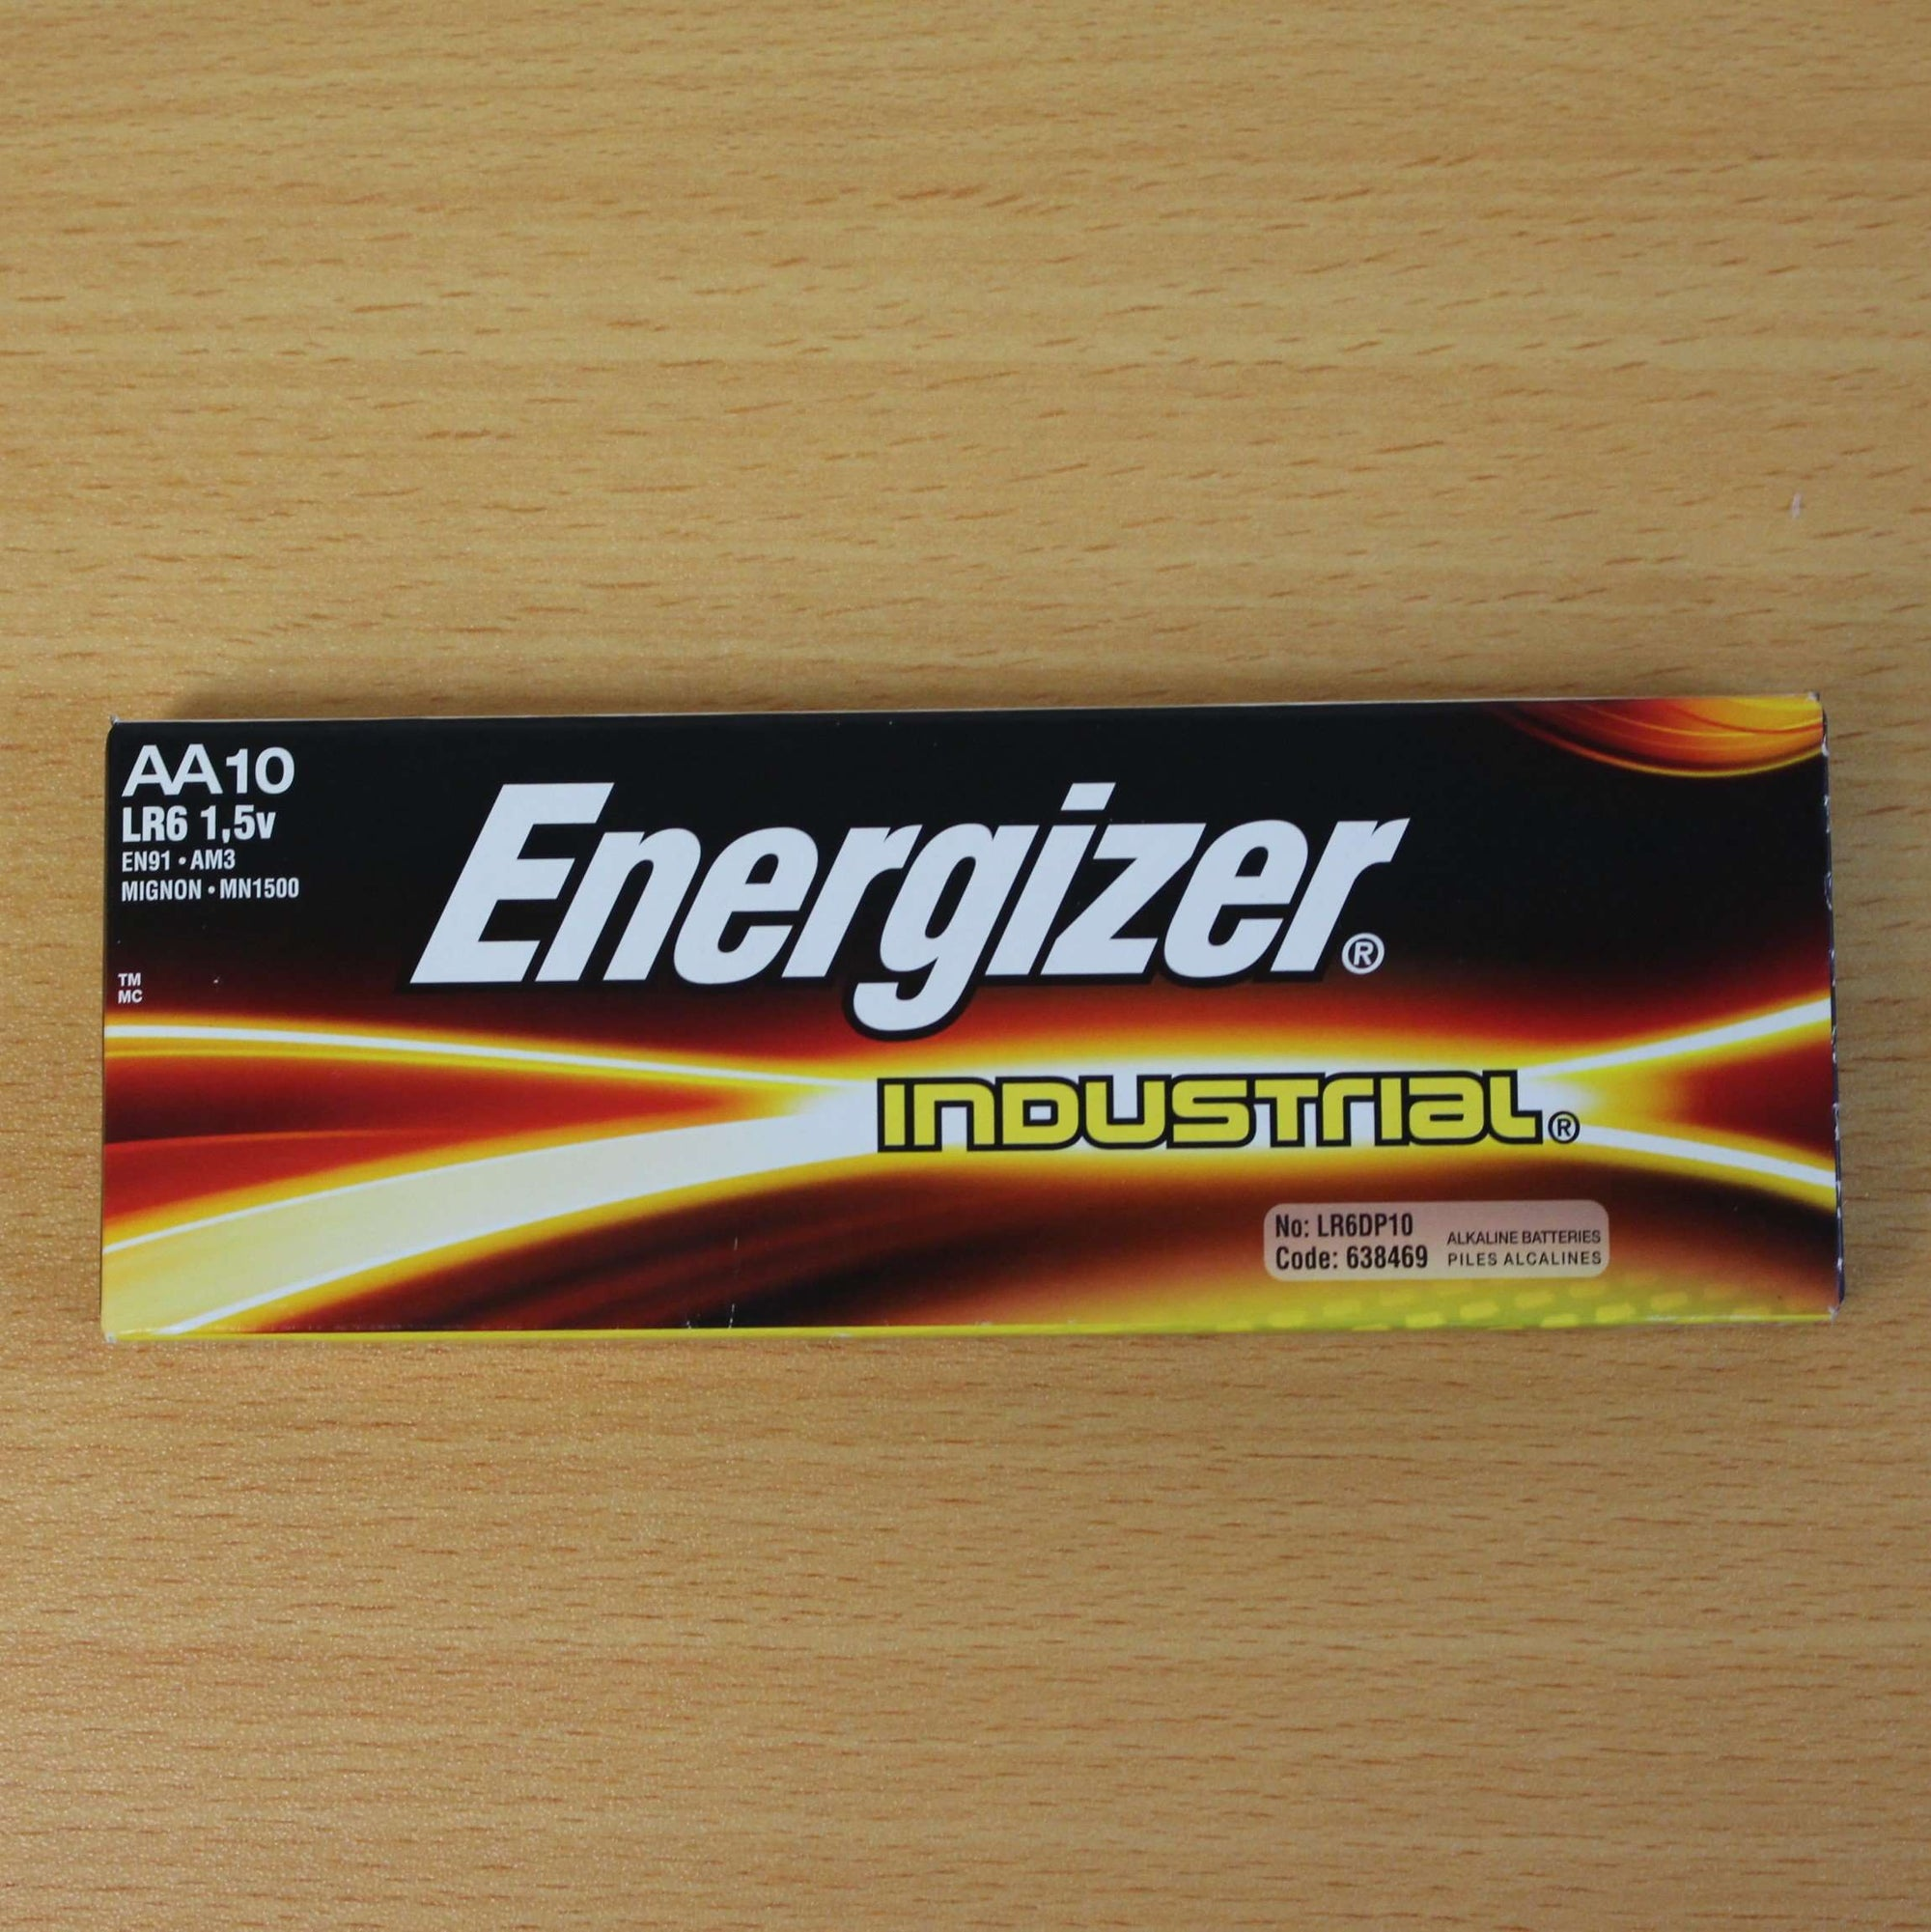 AA Energizer Industrial Batteries - 10 Pack